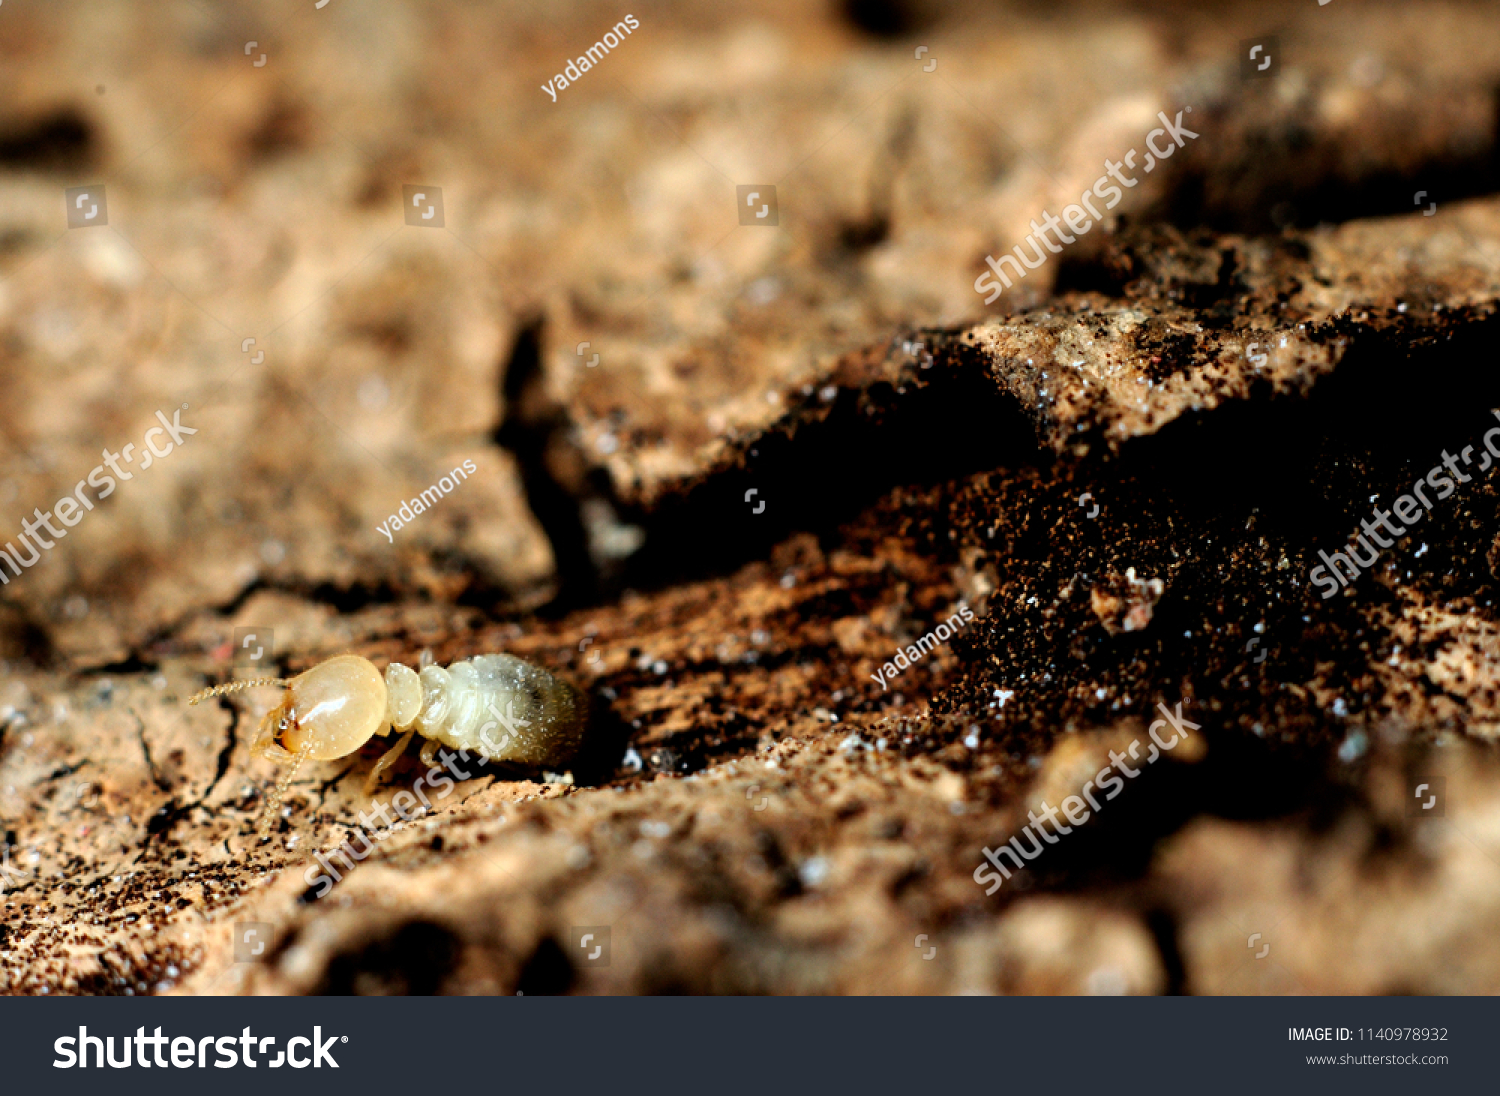 Closeup Single Termite Eat Wood House Animals Wildlife Stock Image 1140978932